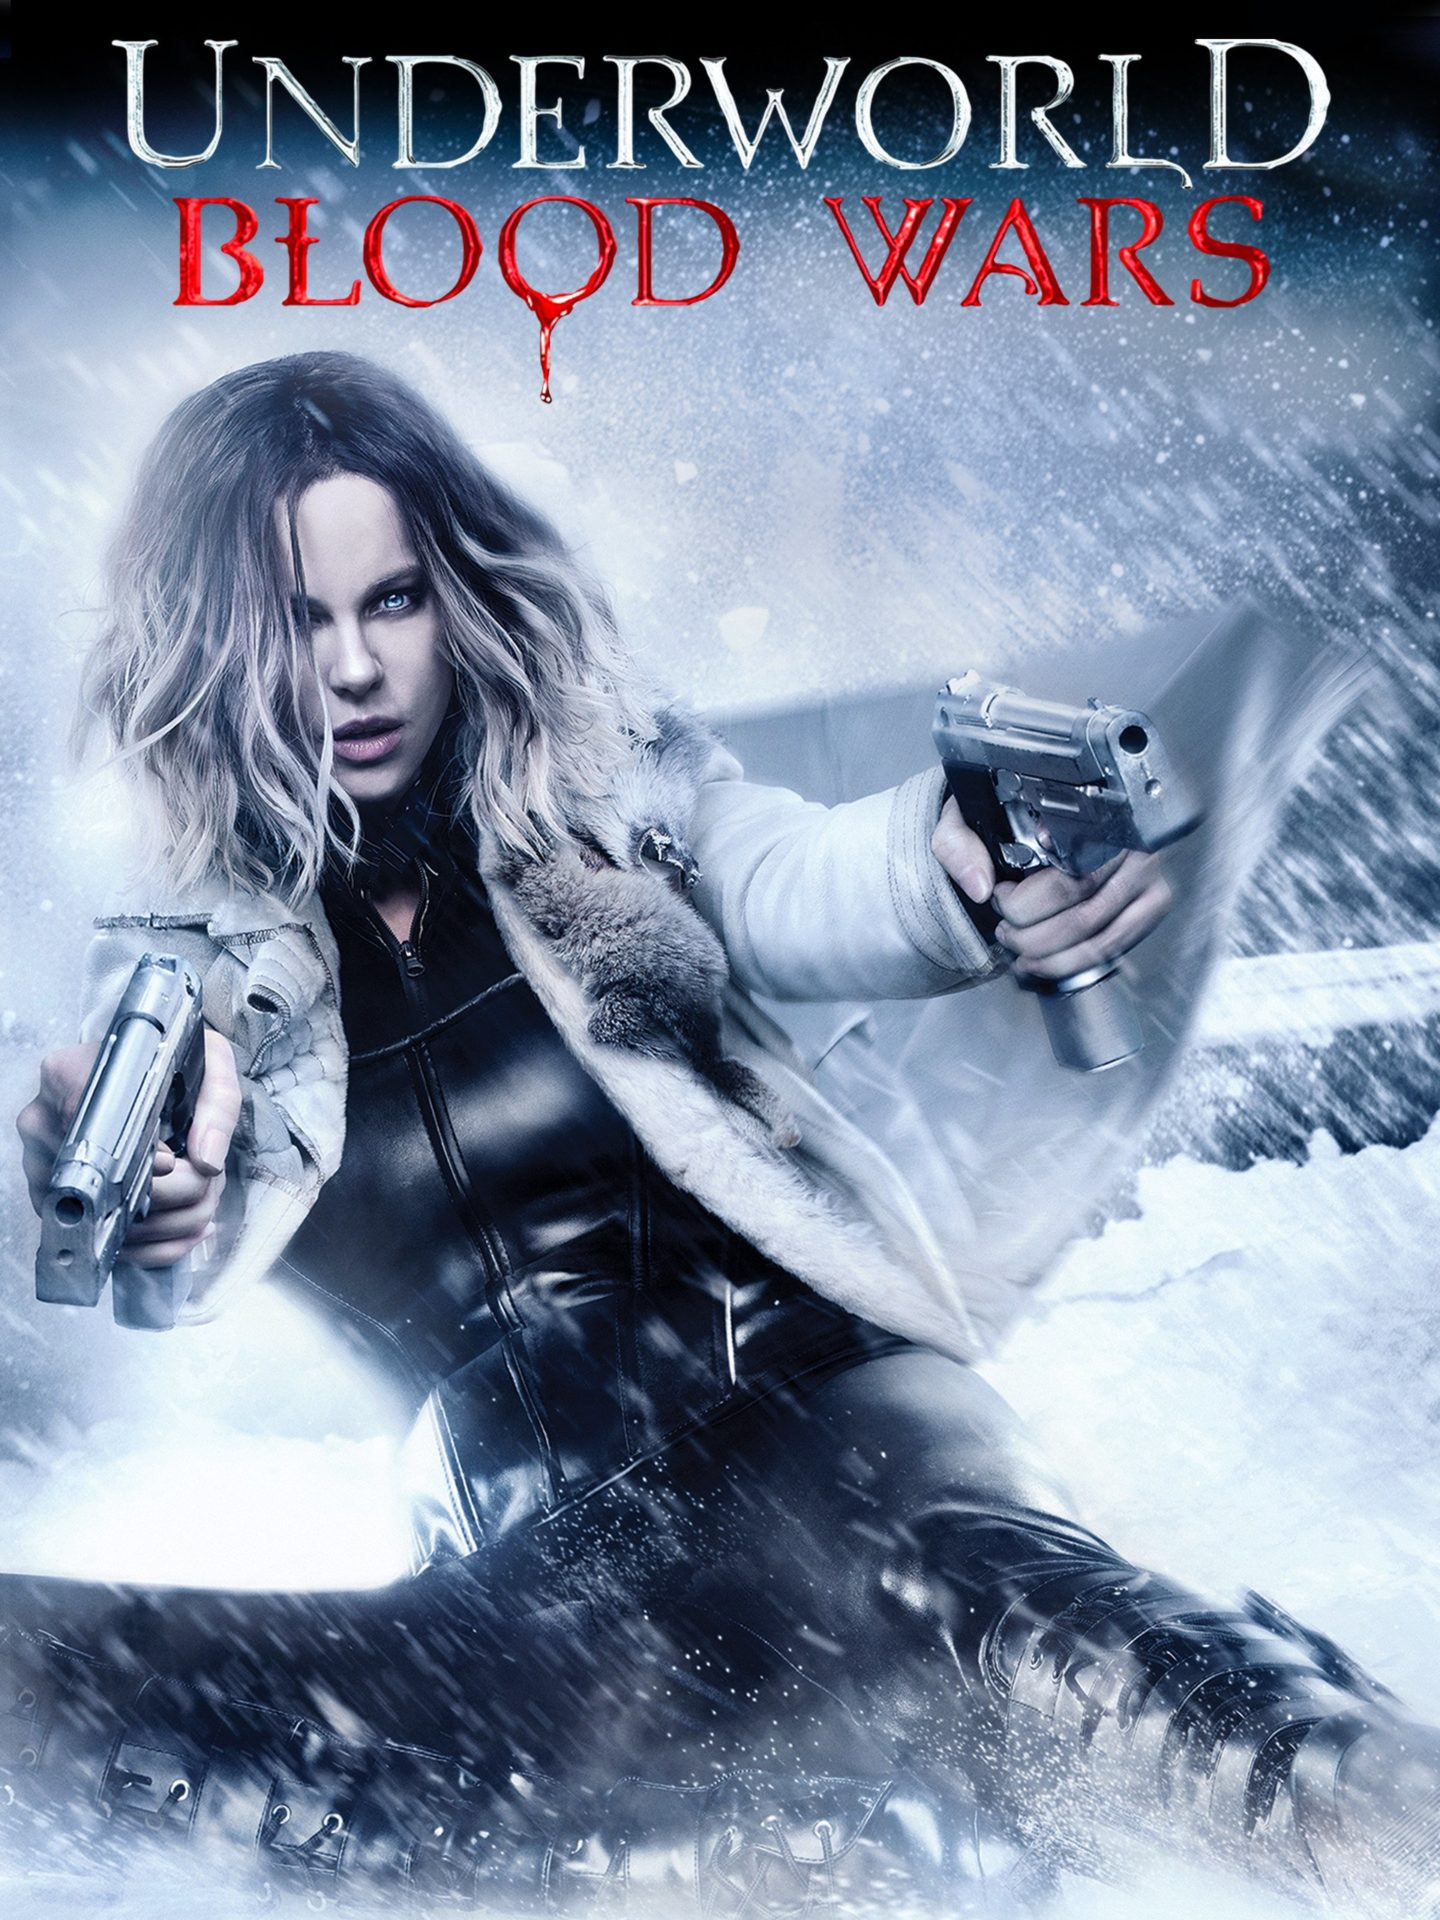 Underworld: Blood Wars – The FCPN Lowdown